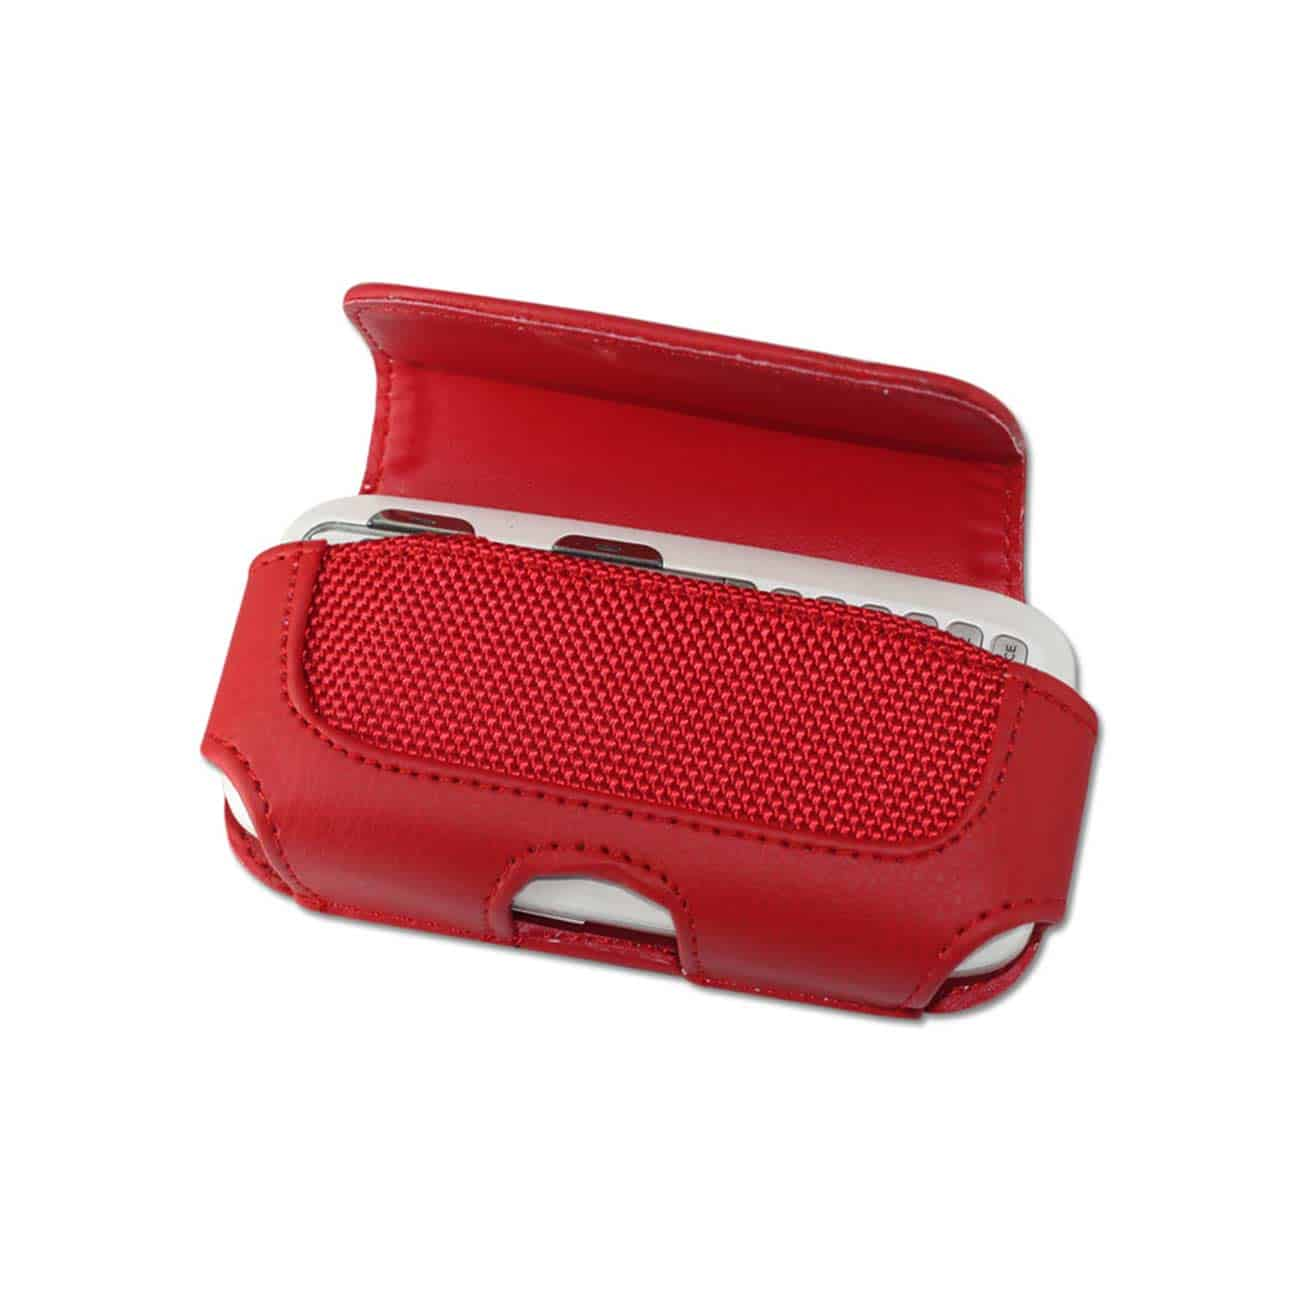 HORIZONTAL POUCH HP11A LG LX260 RED 4.3X2X0.7 INCHES